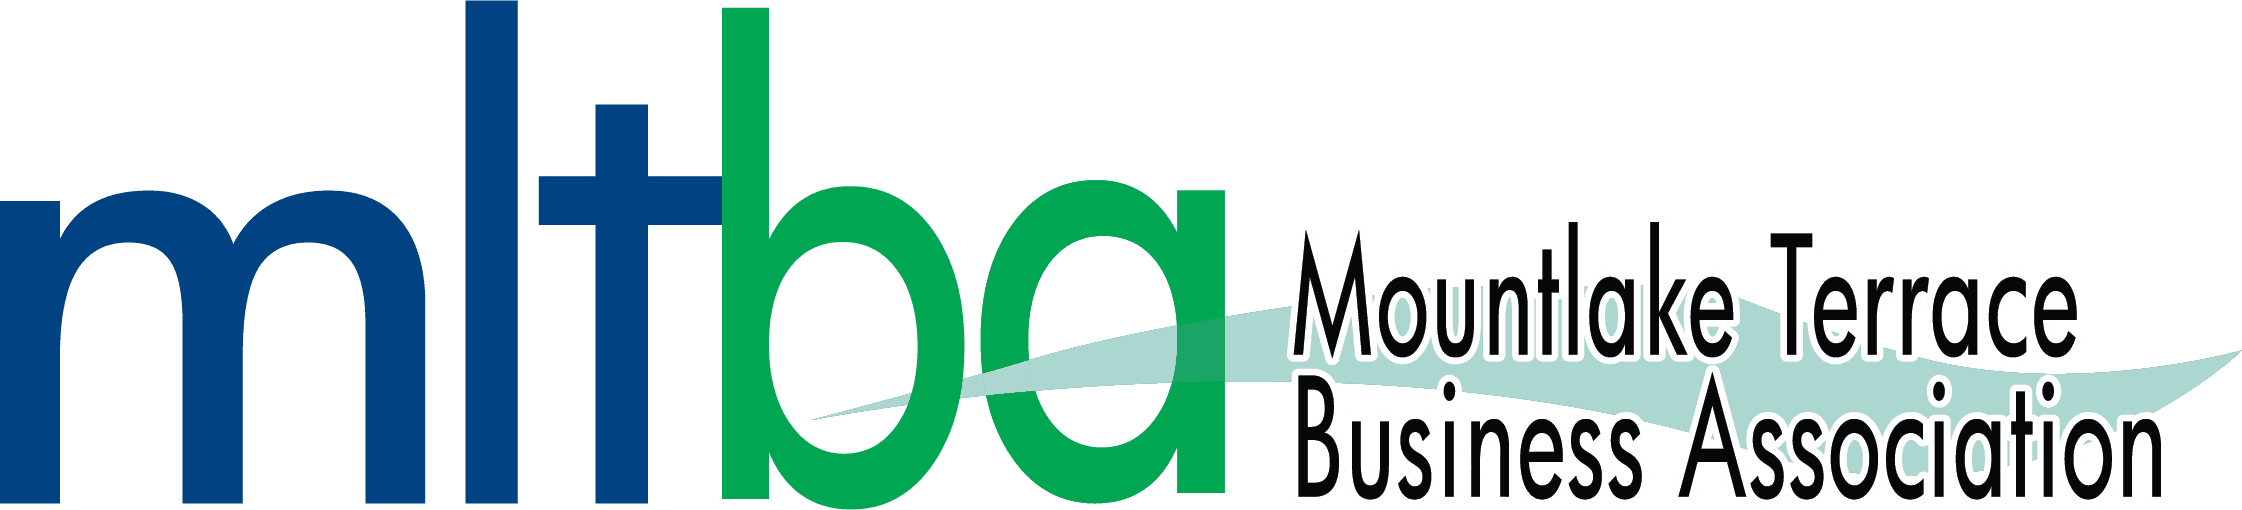 Mountlake Terrace Business Association Logo